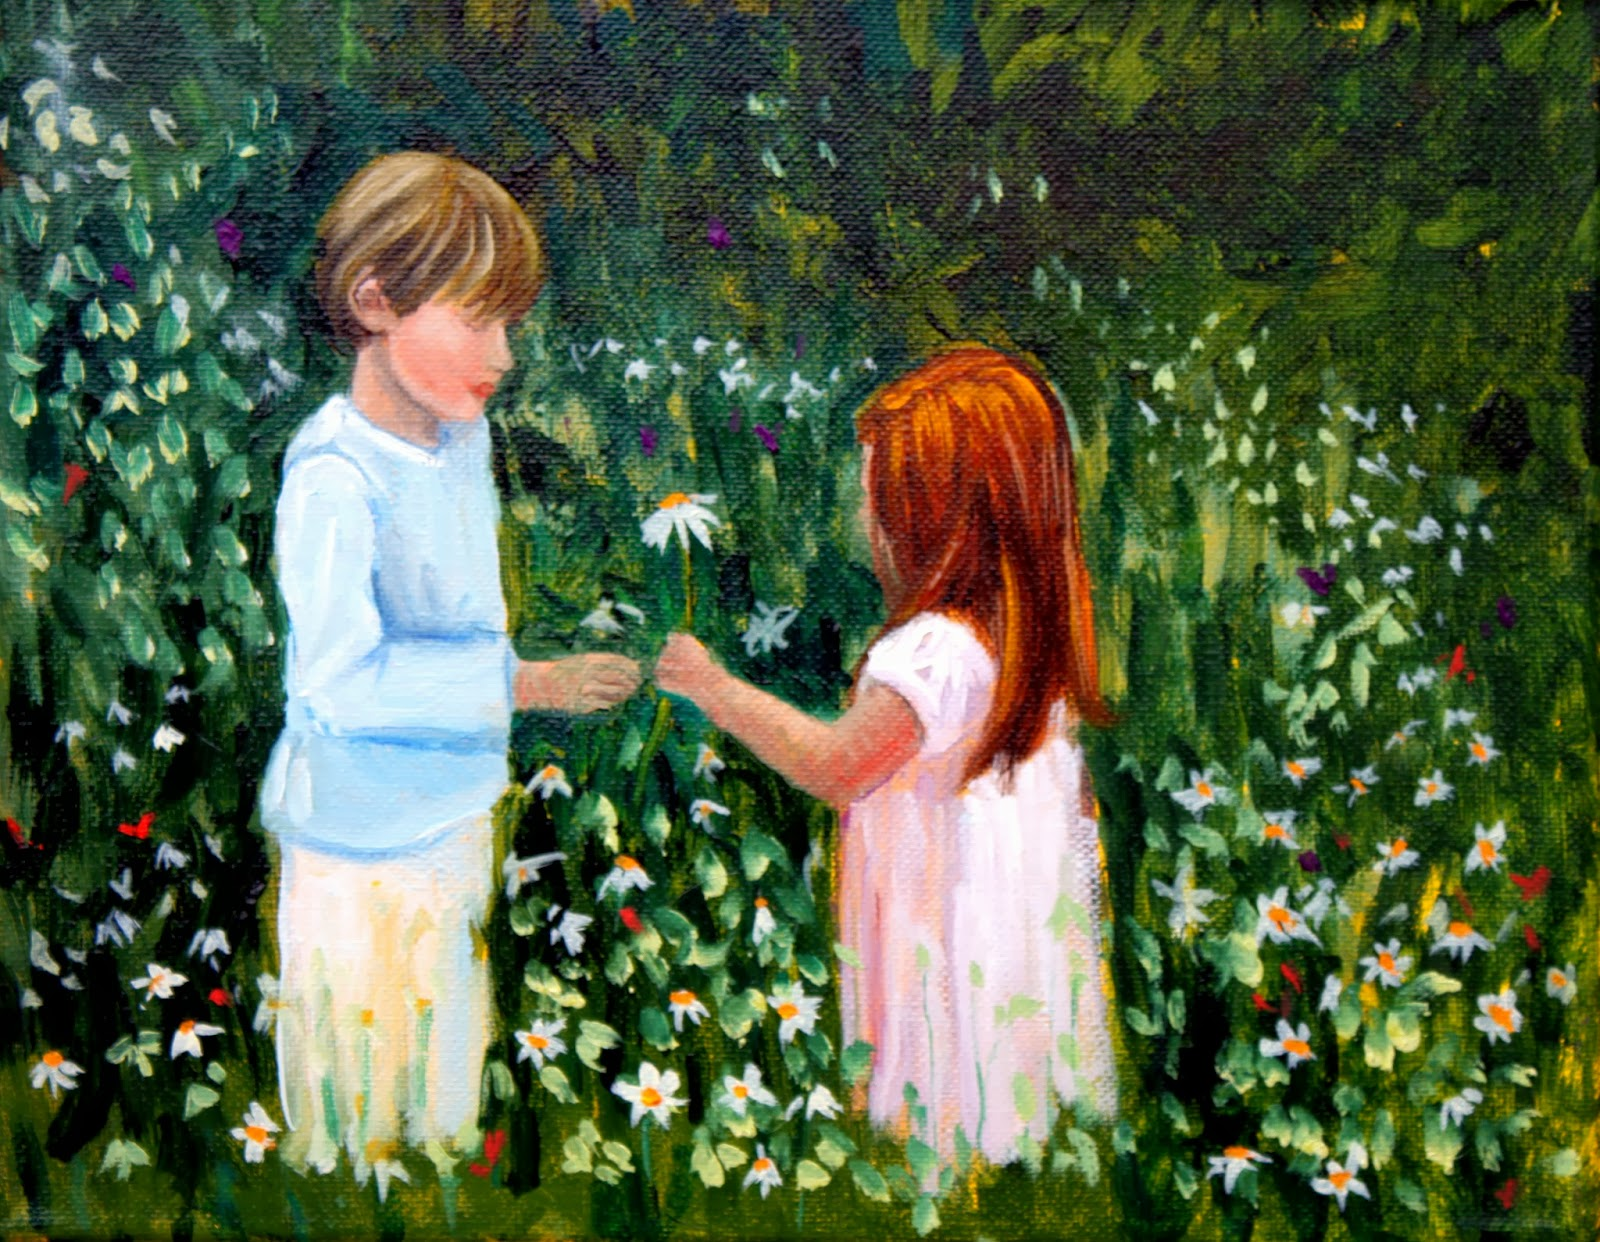 Field's End Art by Hilary J. England: Little Lovers